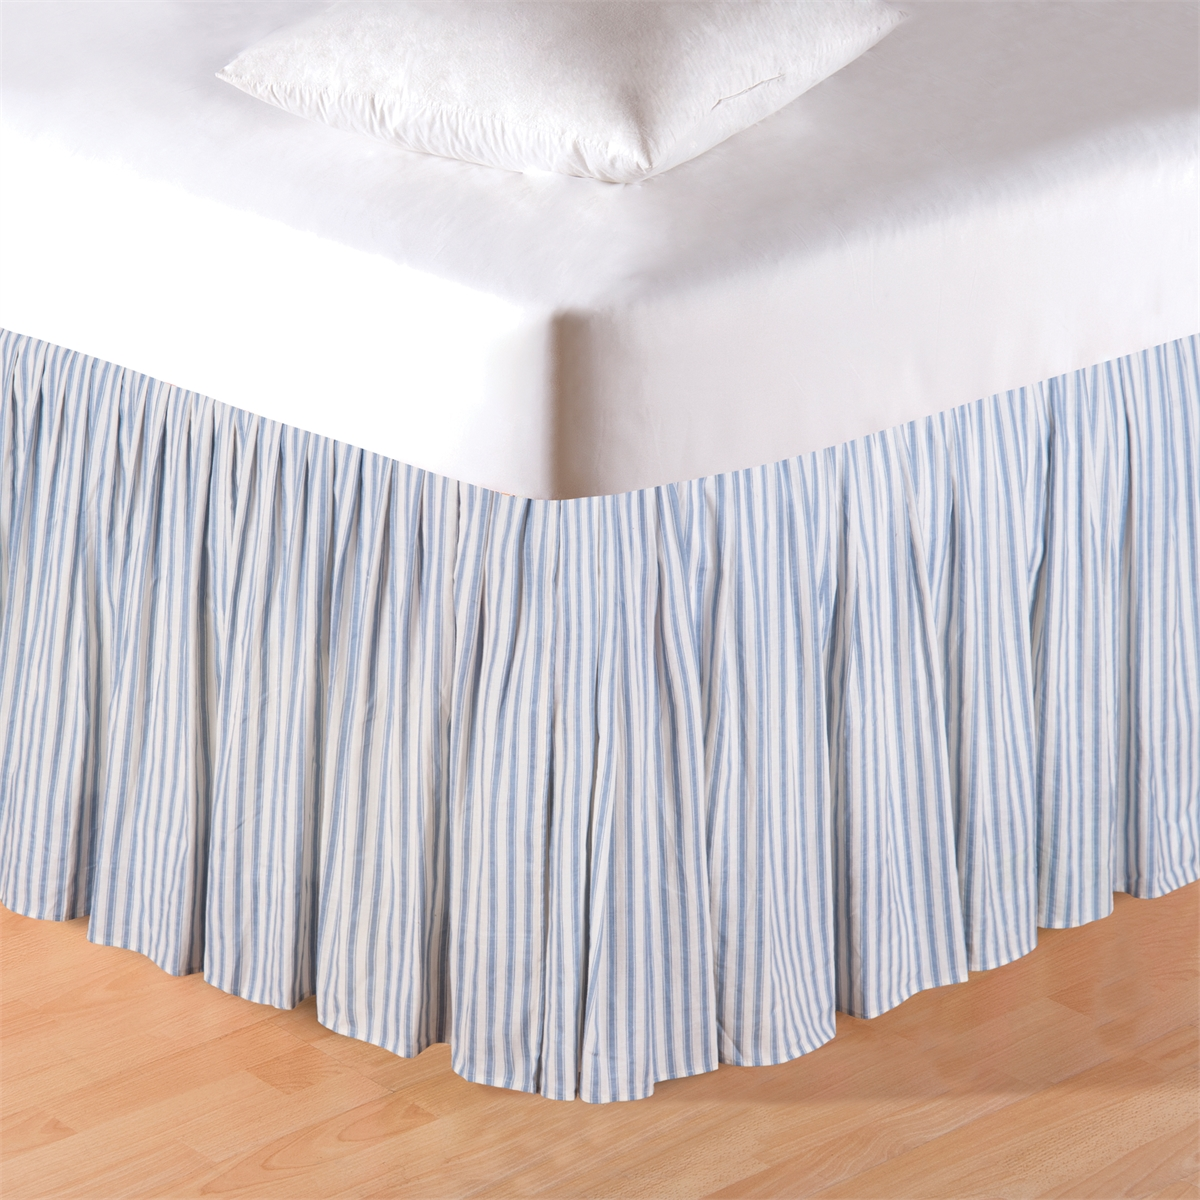 Image of: Strip Gray Bed Skirt